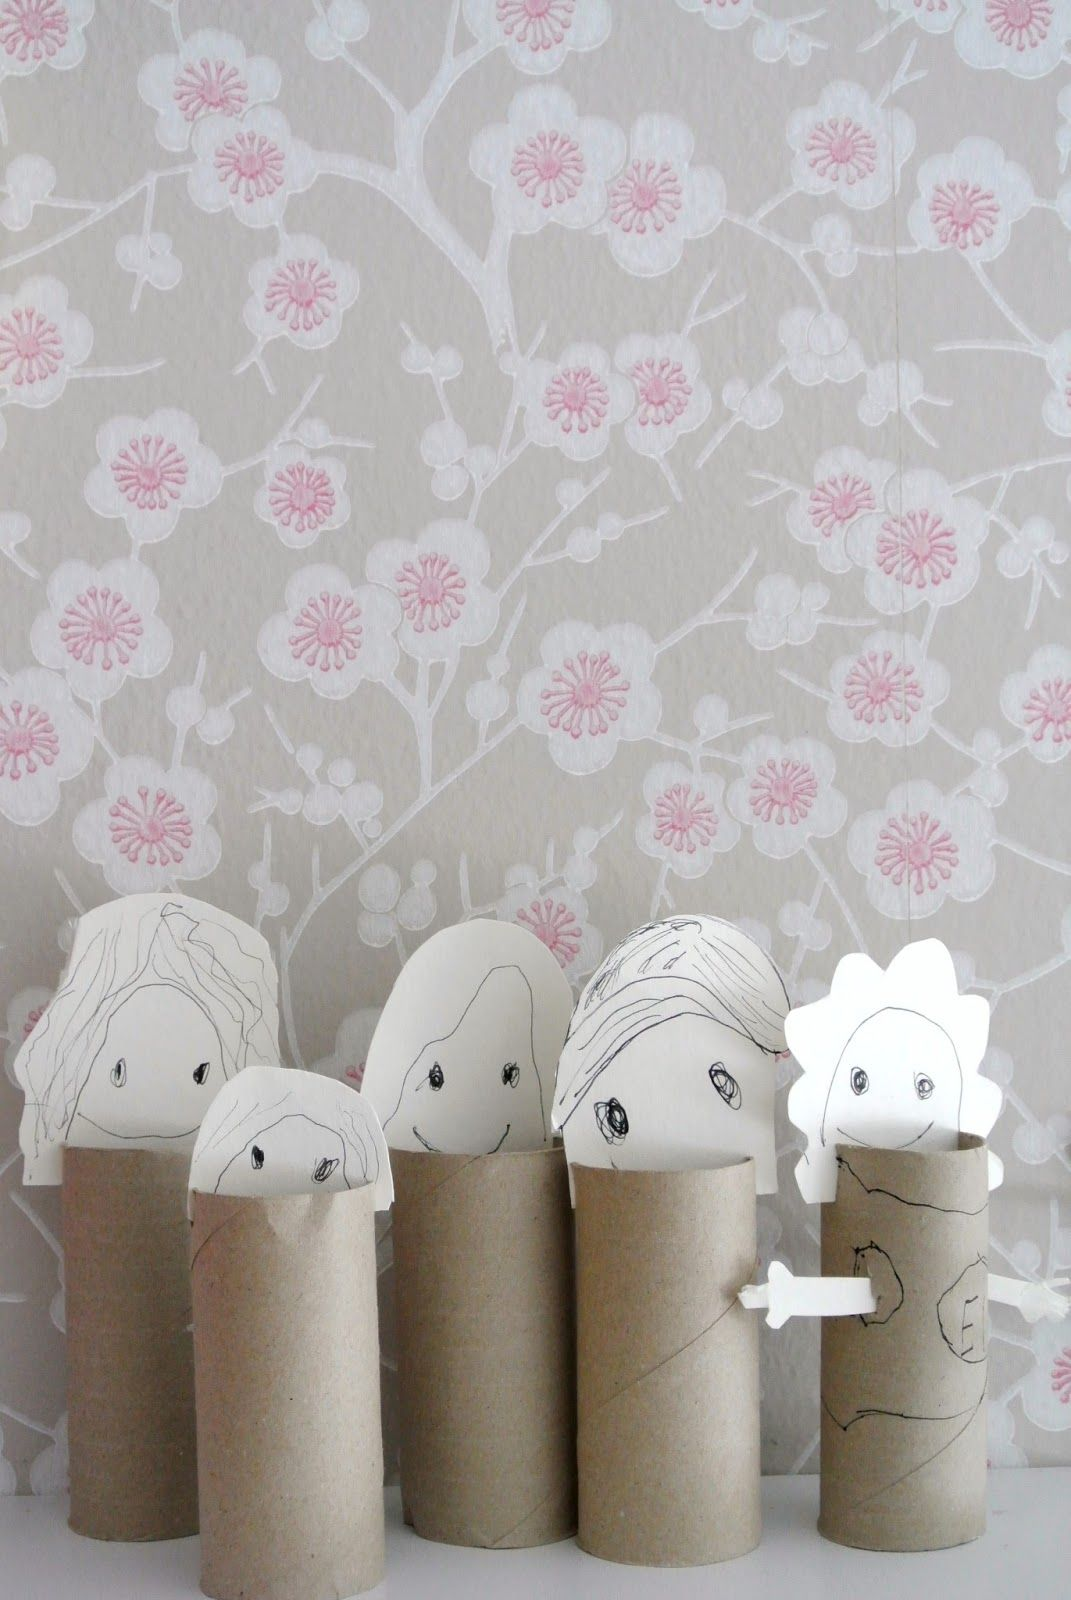 Toilet Paper Roll People They D Need To Be Painted Maybe Glue Fabric To Them Add Buttons And